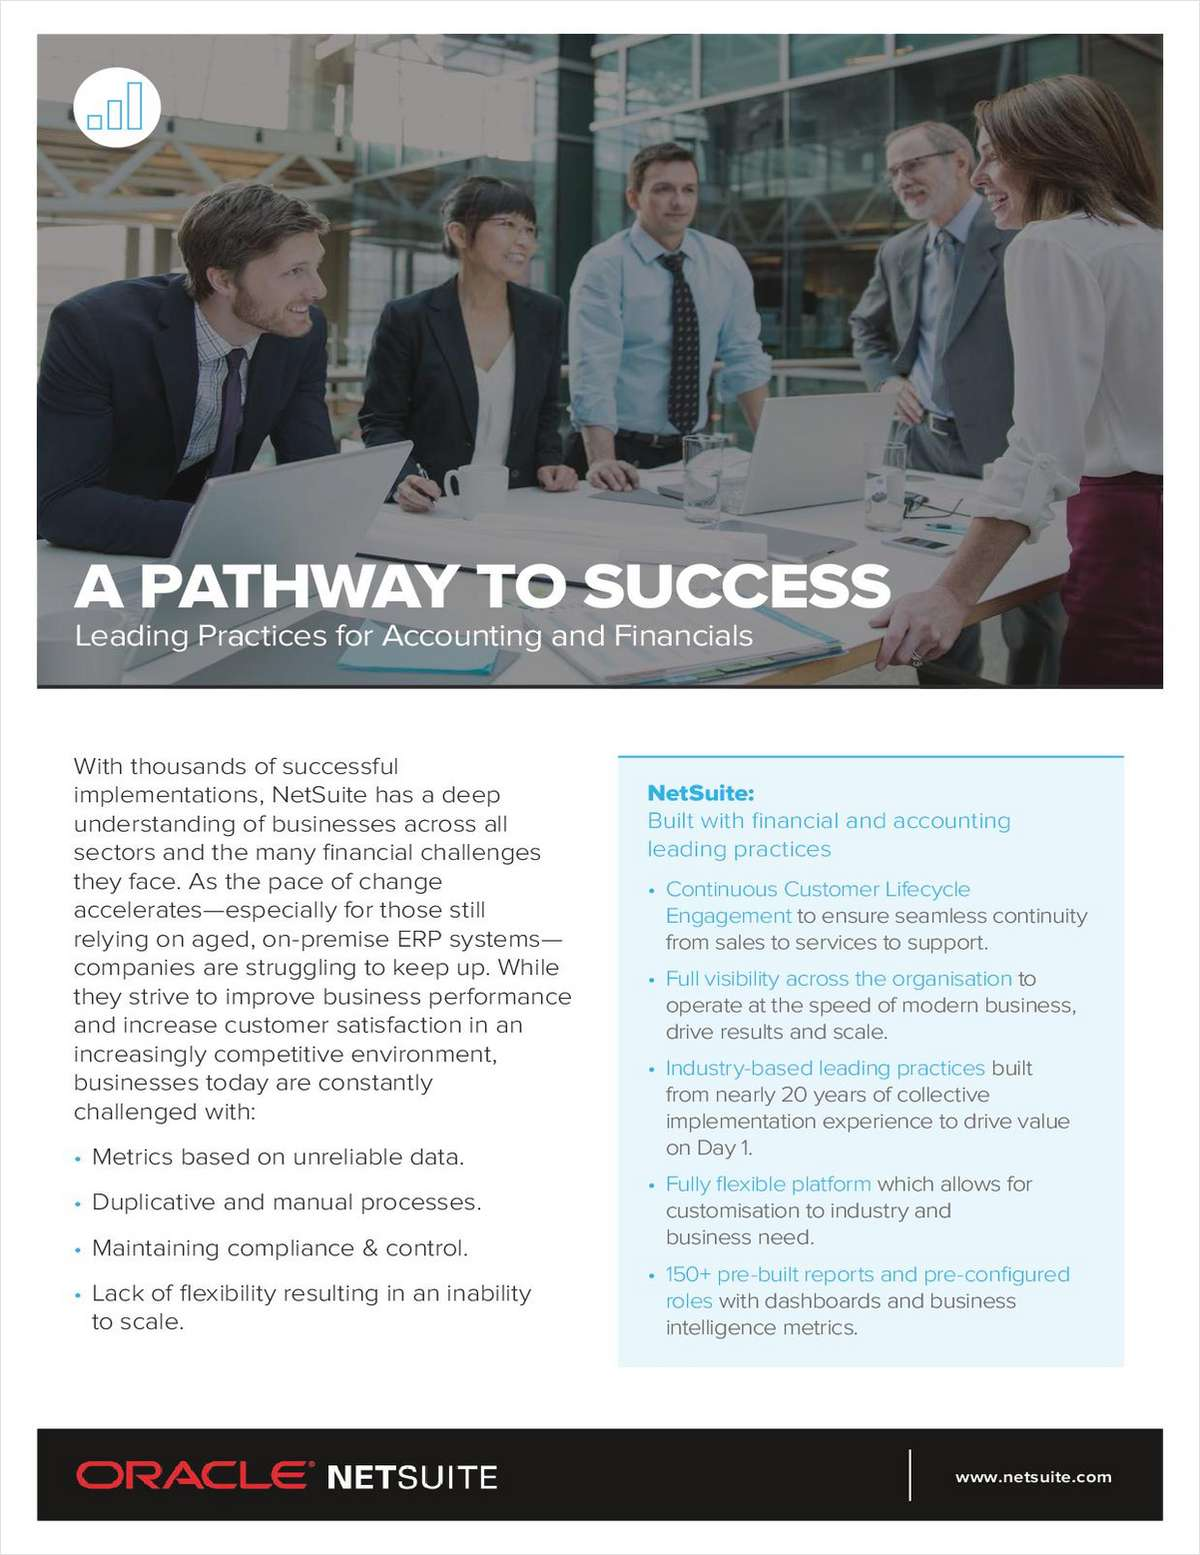 A Pathway to Success: Leading Practices for Accounting and Financials